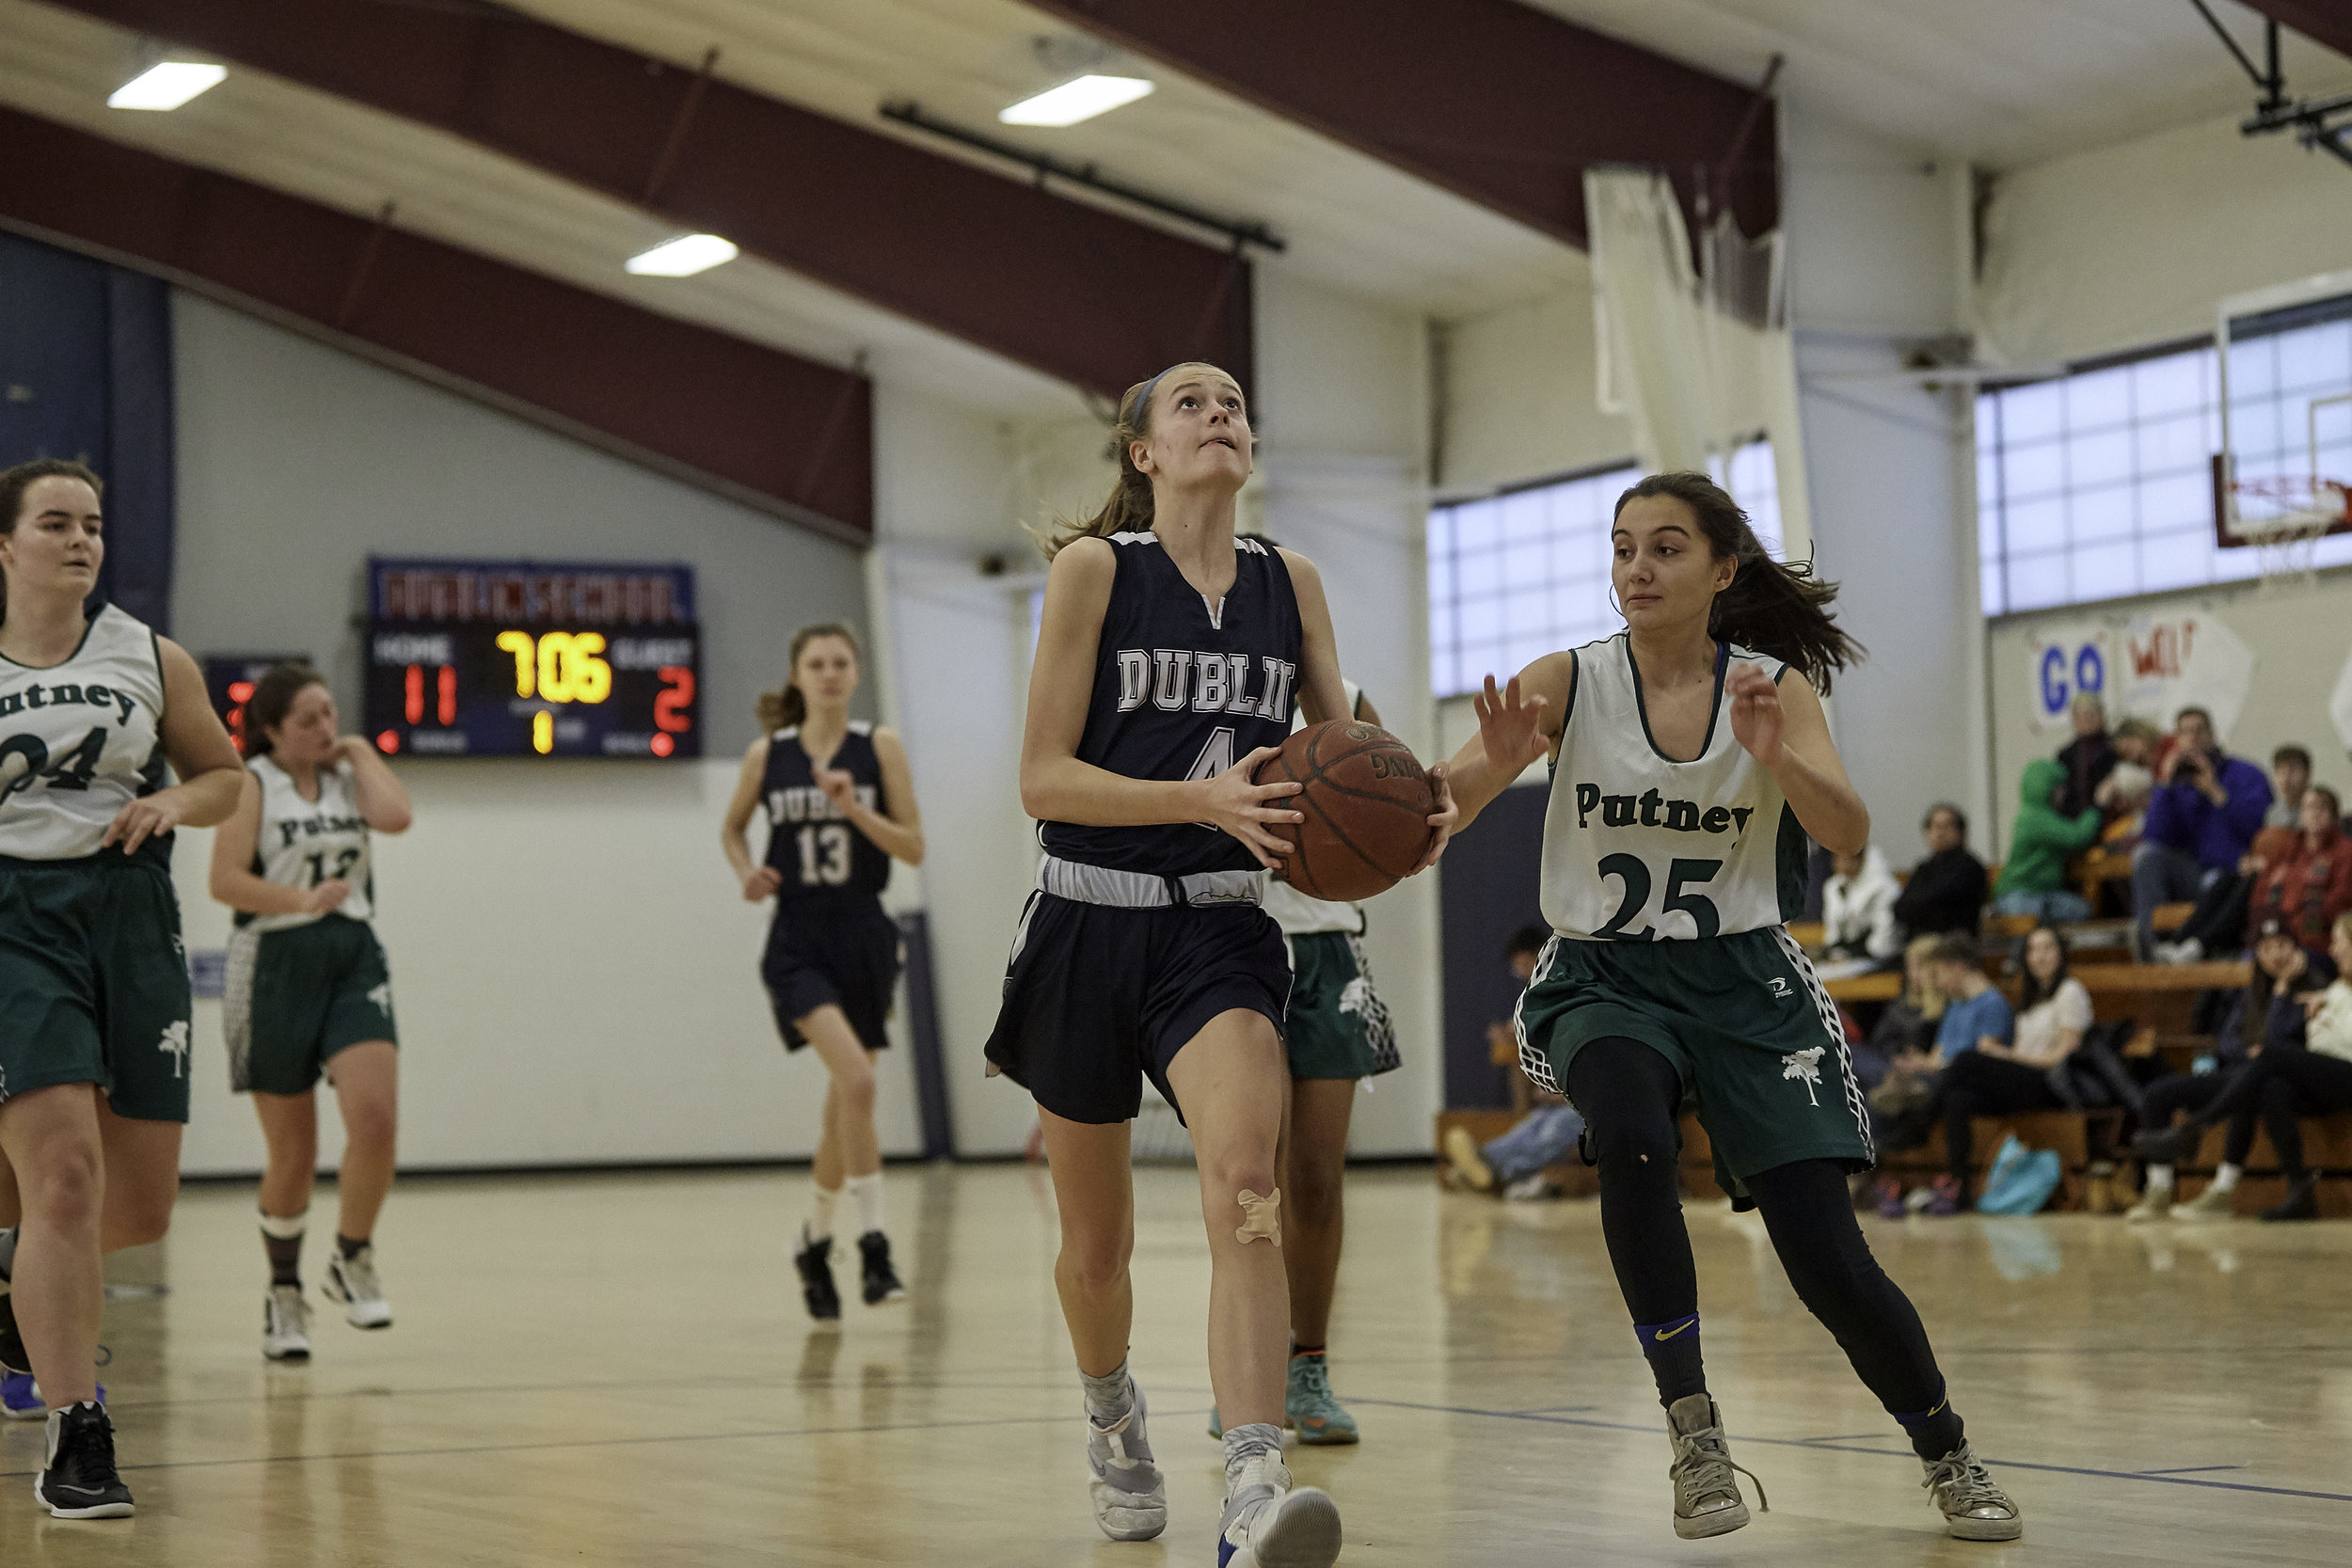 Basketball vs Putney School, February 9, 2019 - 167249.jpg